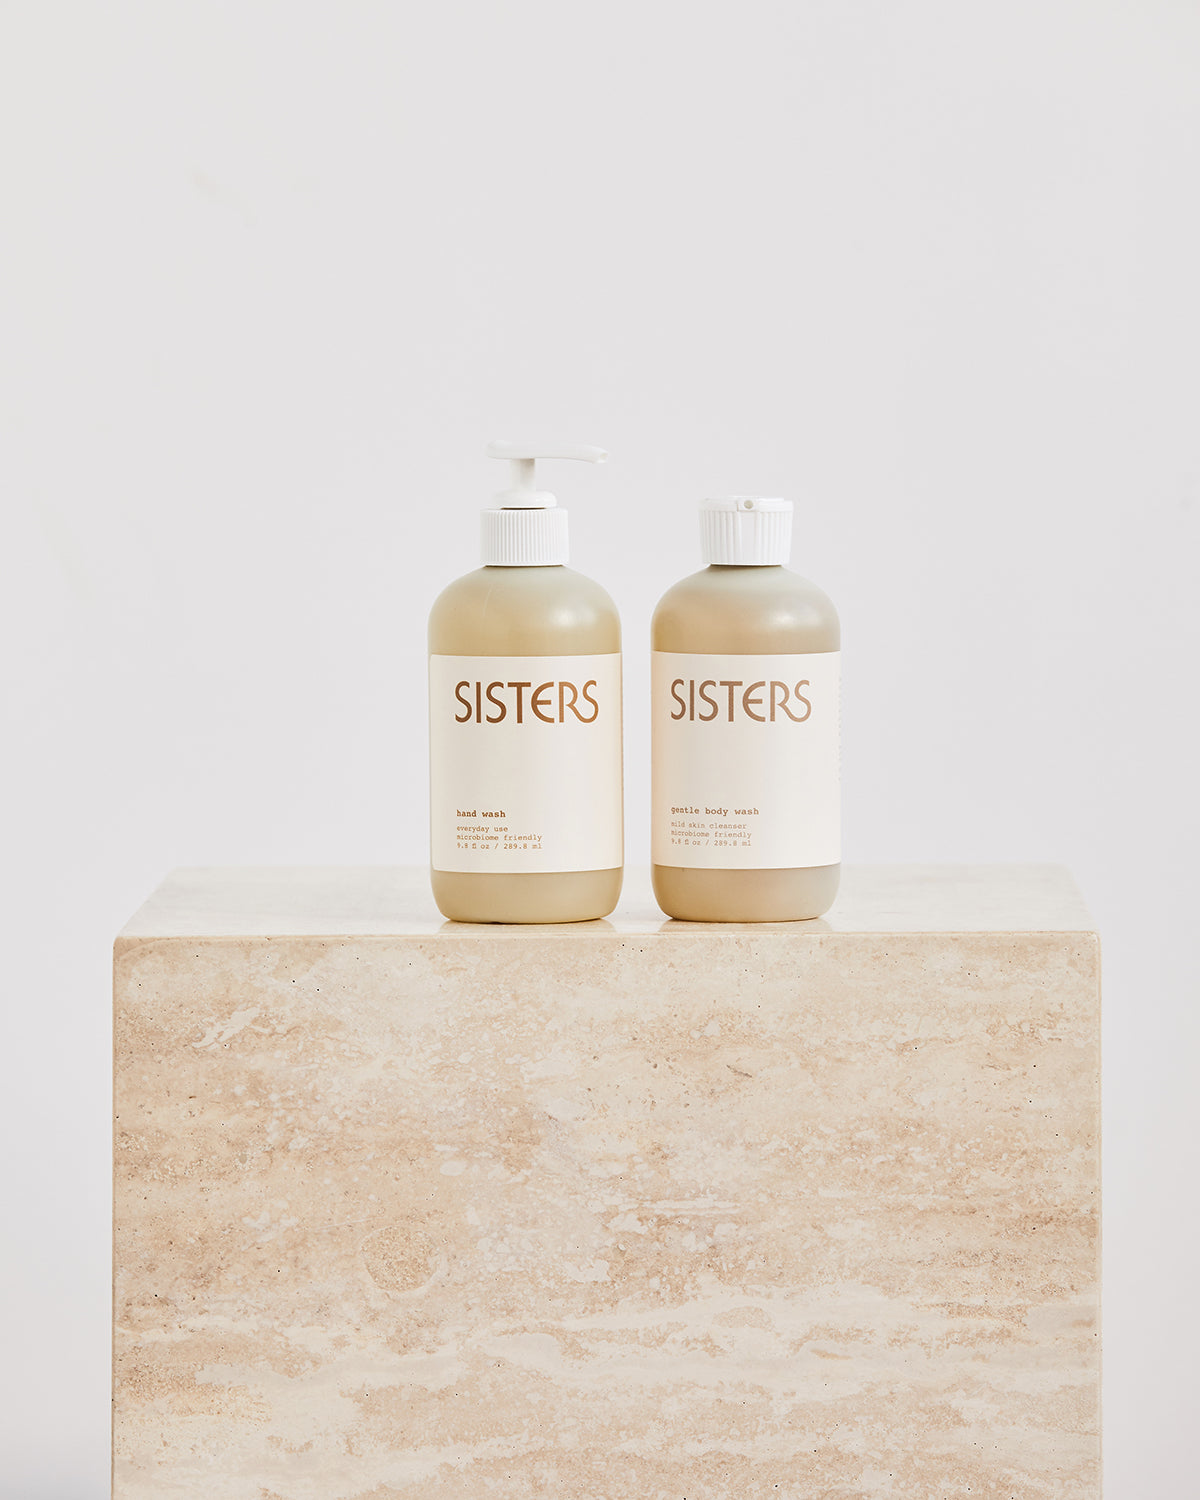 Sisters Body Gentle Body Wash